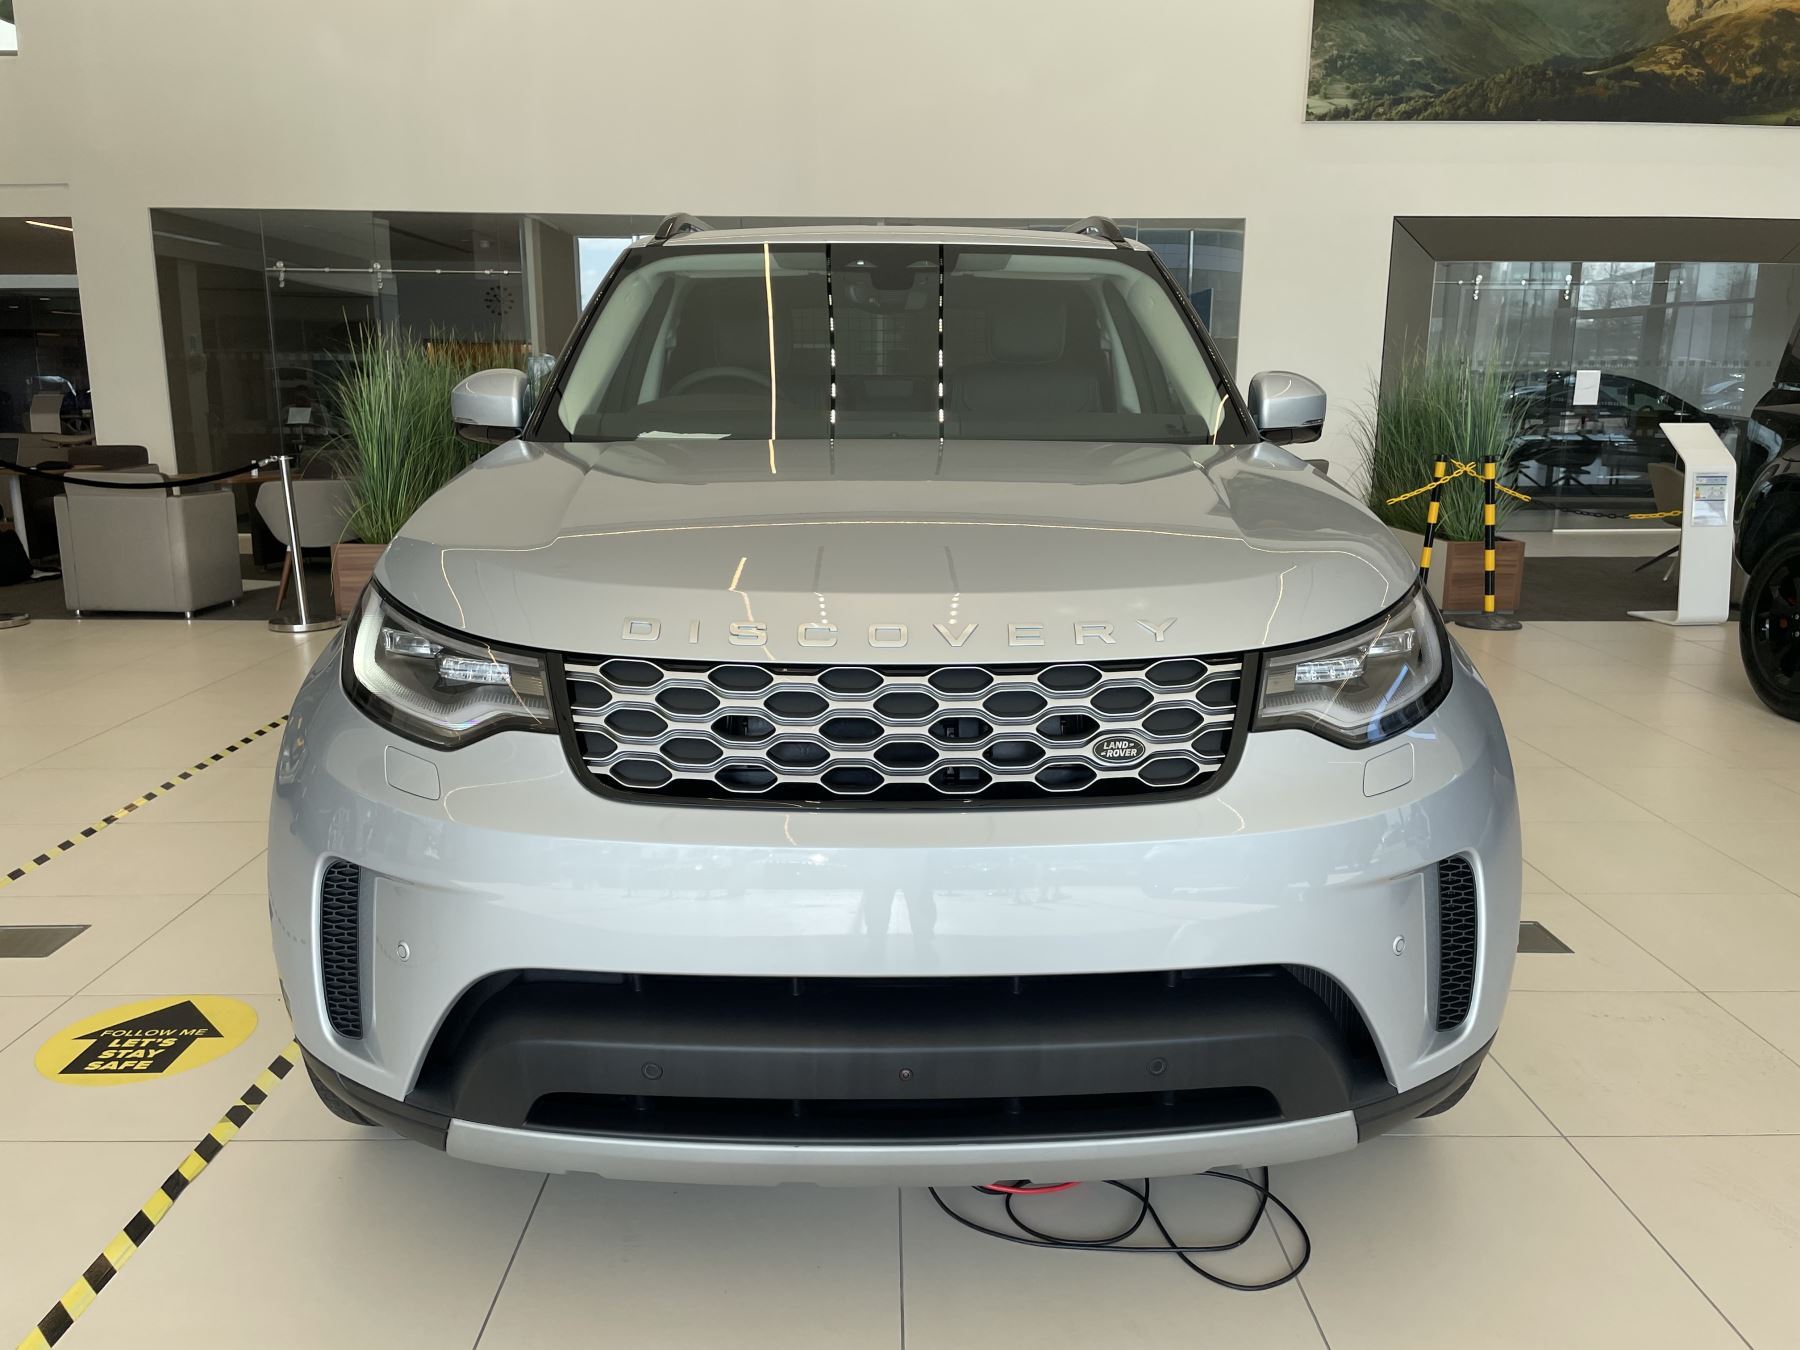 Land Rover Discovery 3.0 D300 SE COMMERCIAL 5dr Auto image 6